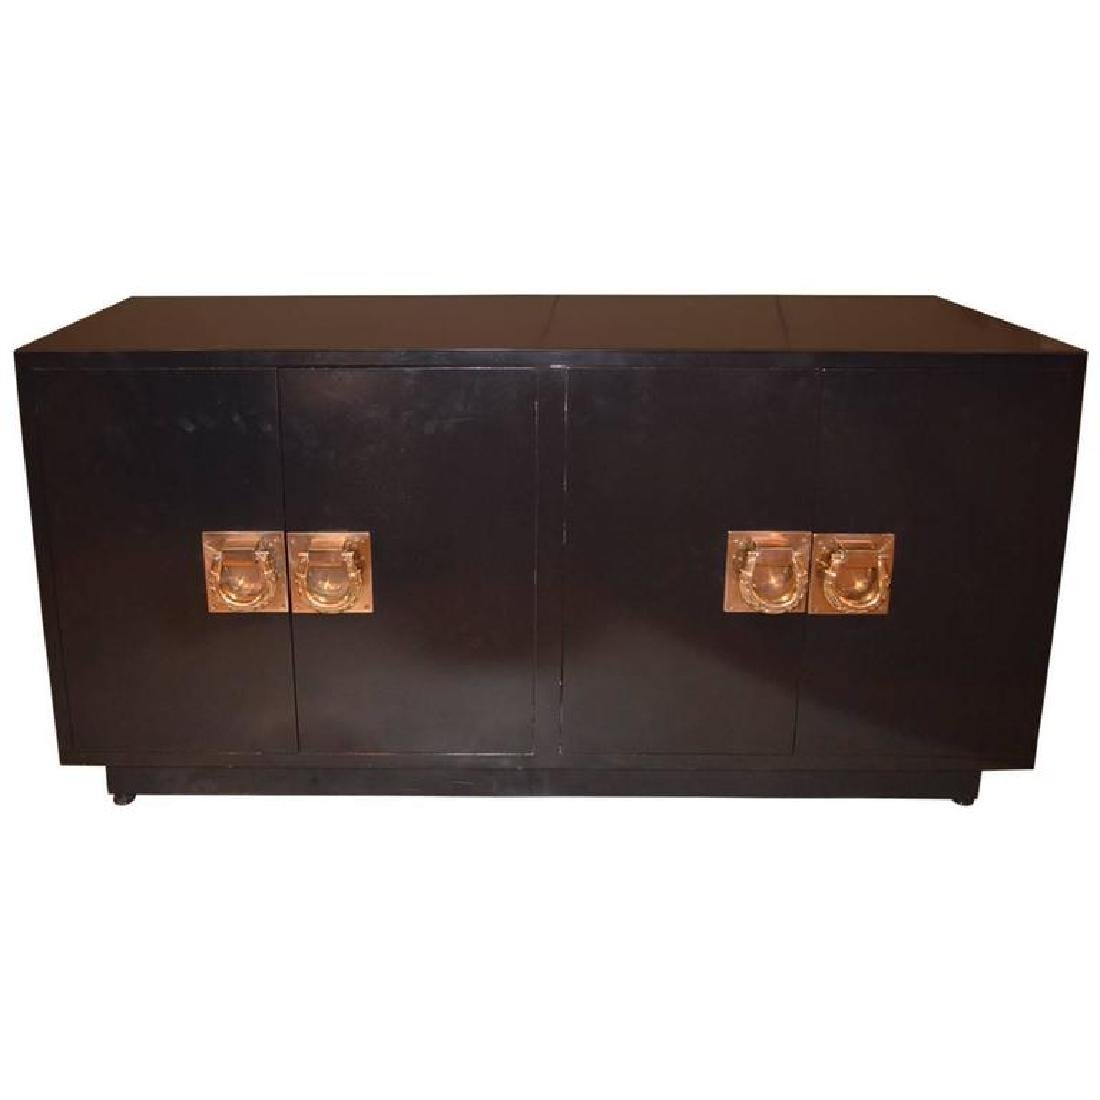 id-Century Modern Lacquered Credenza